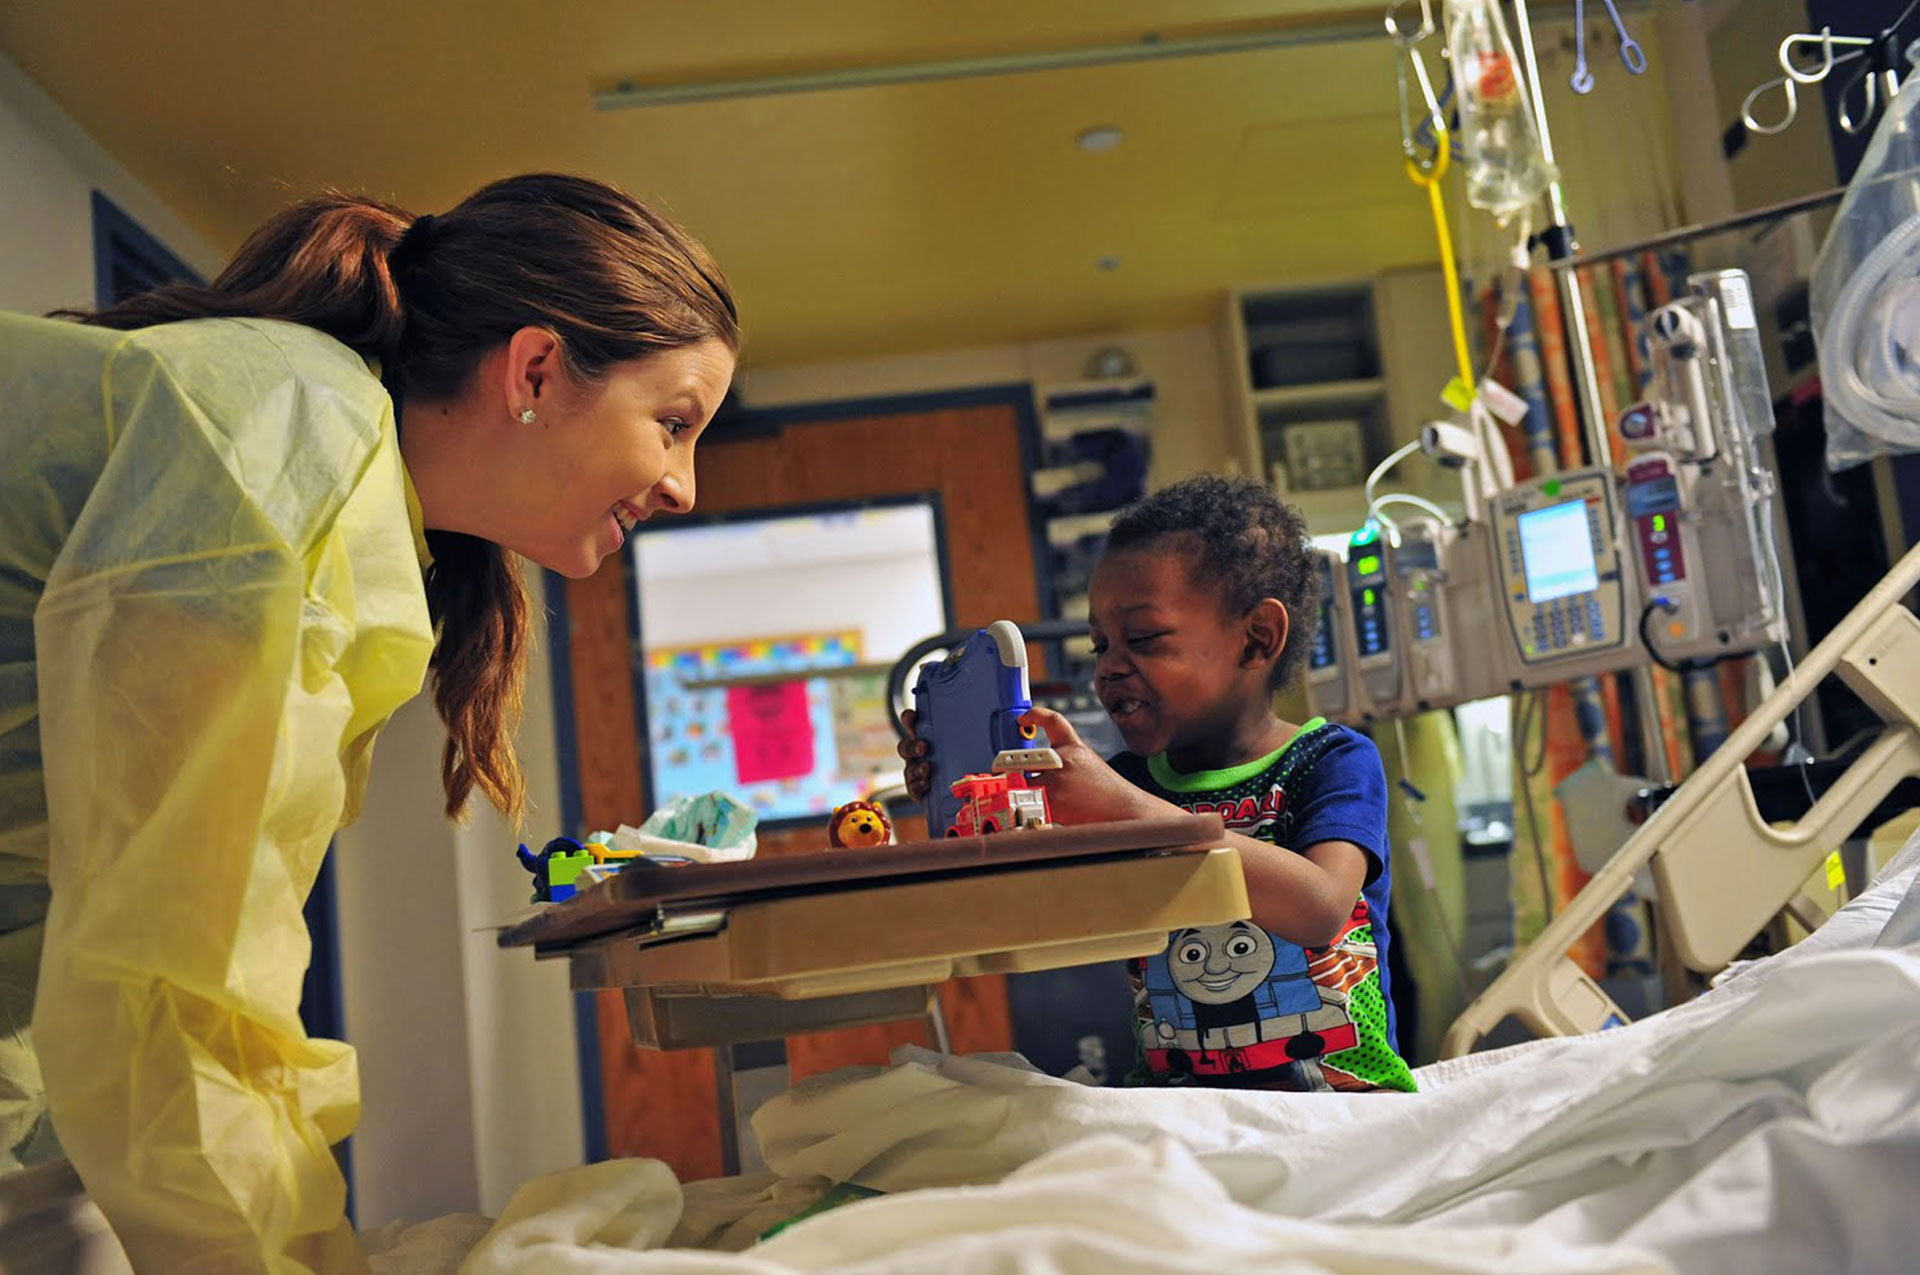 Connecting college students with hospitalized children